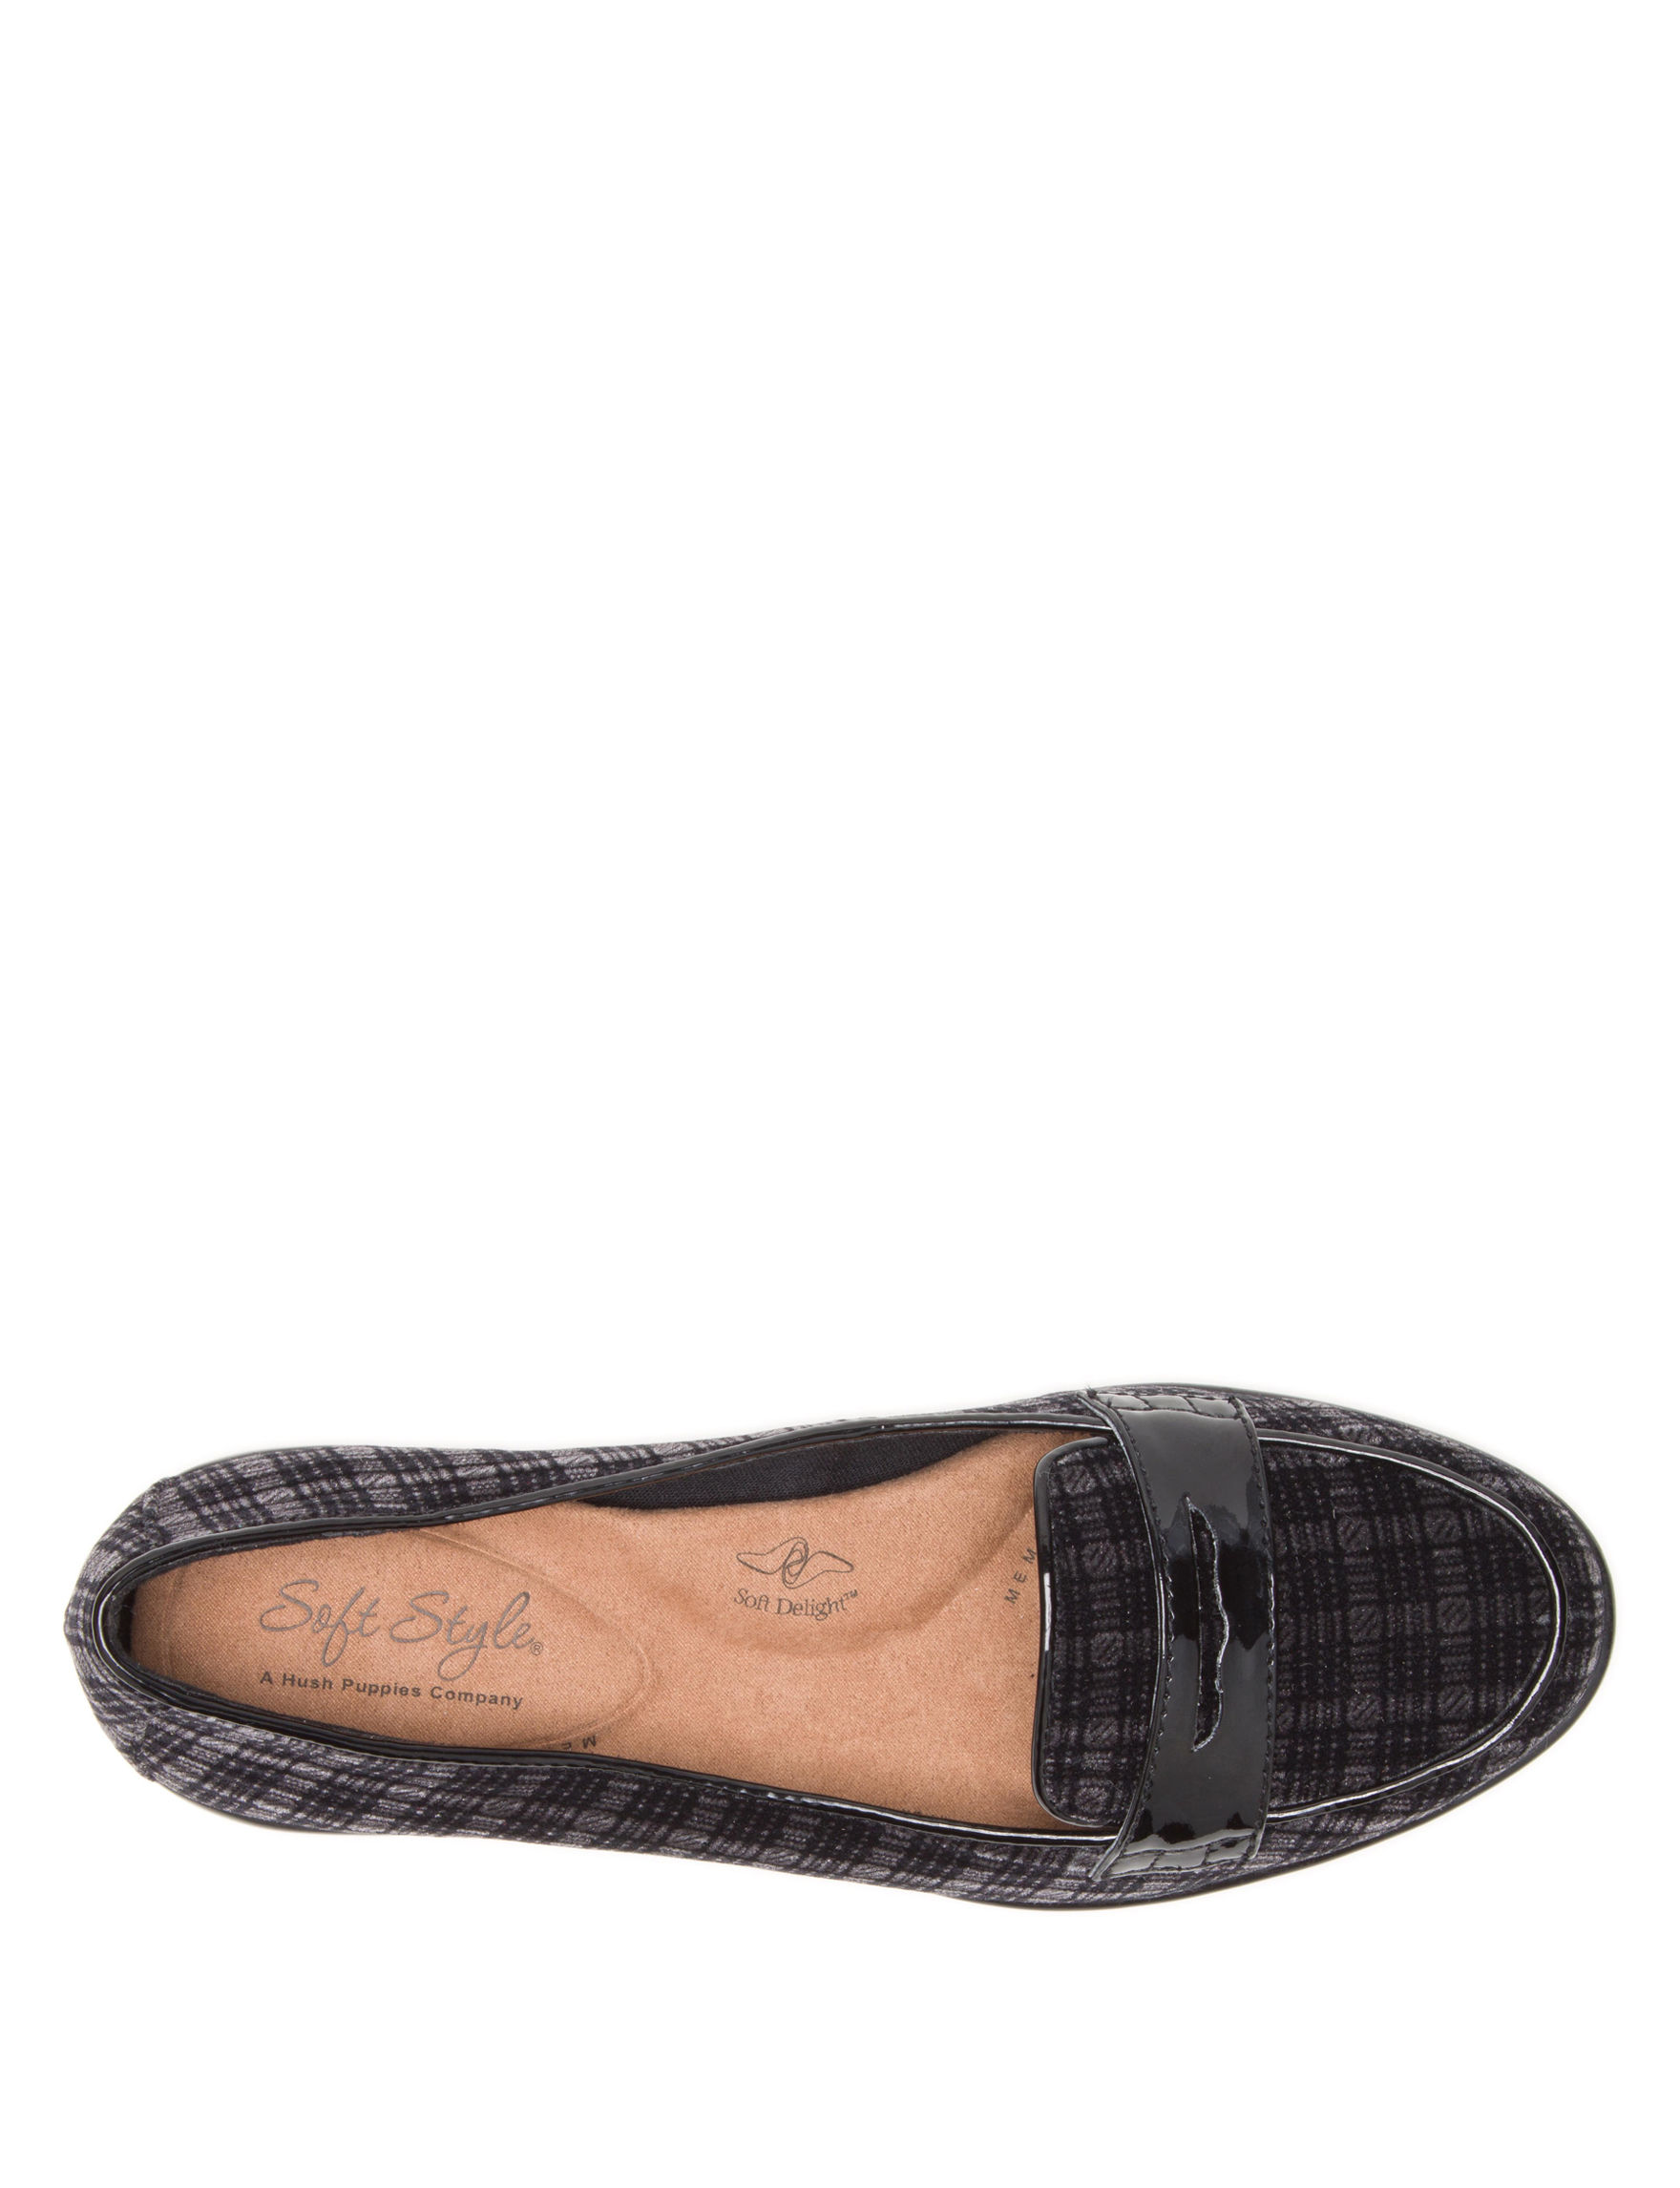 b8bf896e1805 Soft Style Daly Loafers